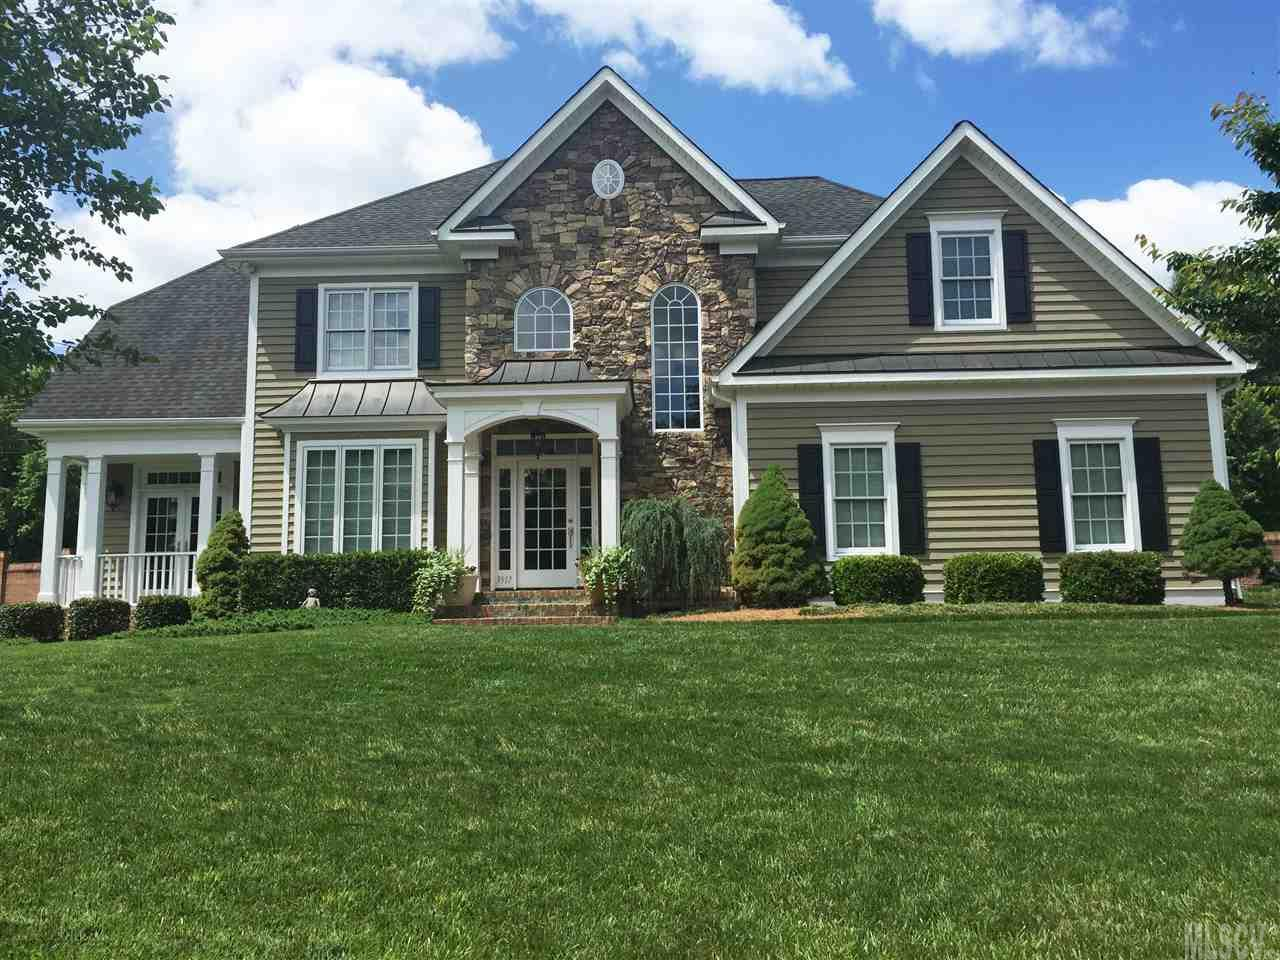 3917 2nd Street Dr NW, Hickory, NC 28601